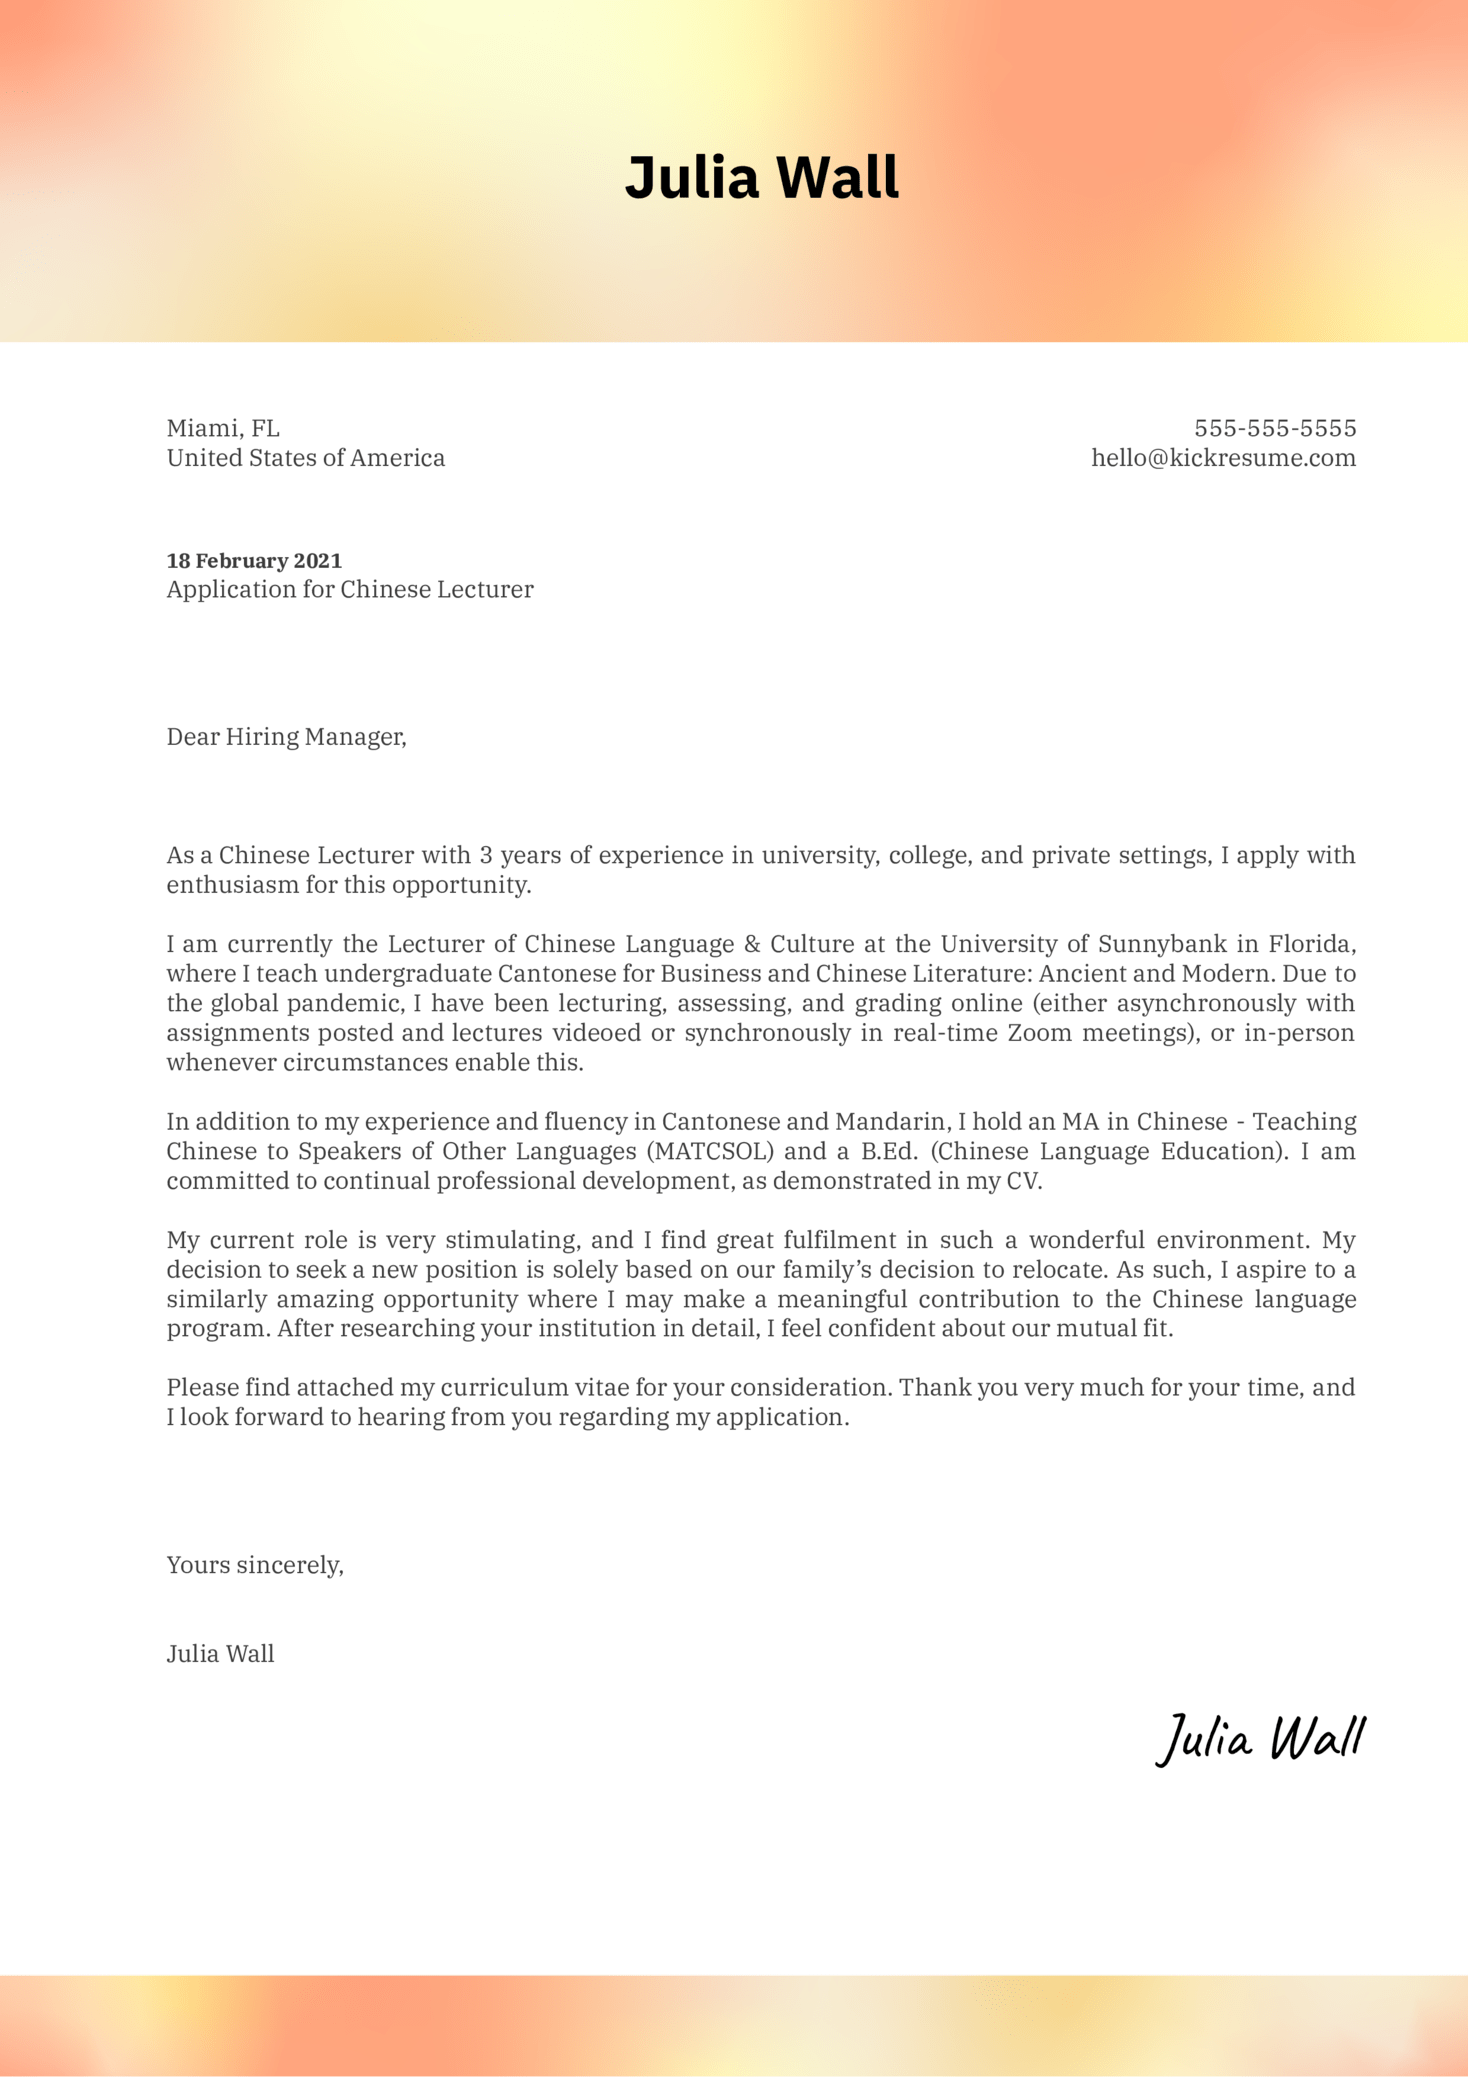 Chinese Lecturer Cover Letter Example